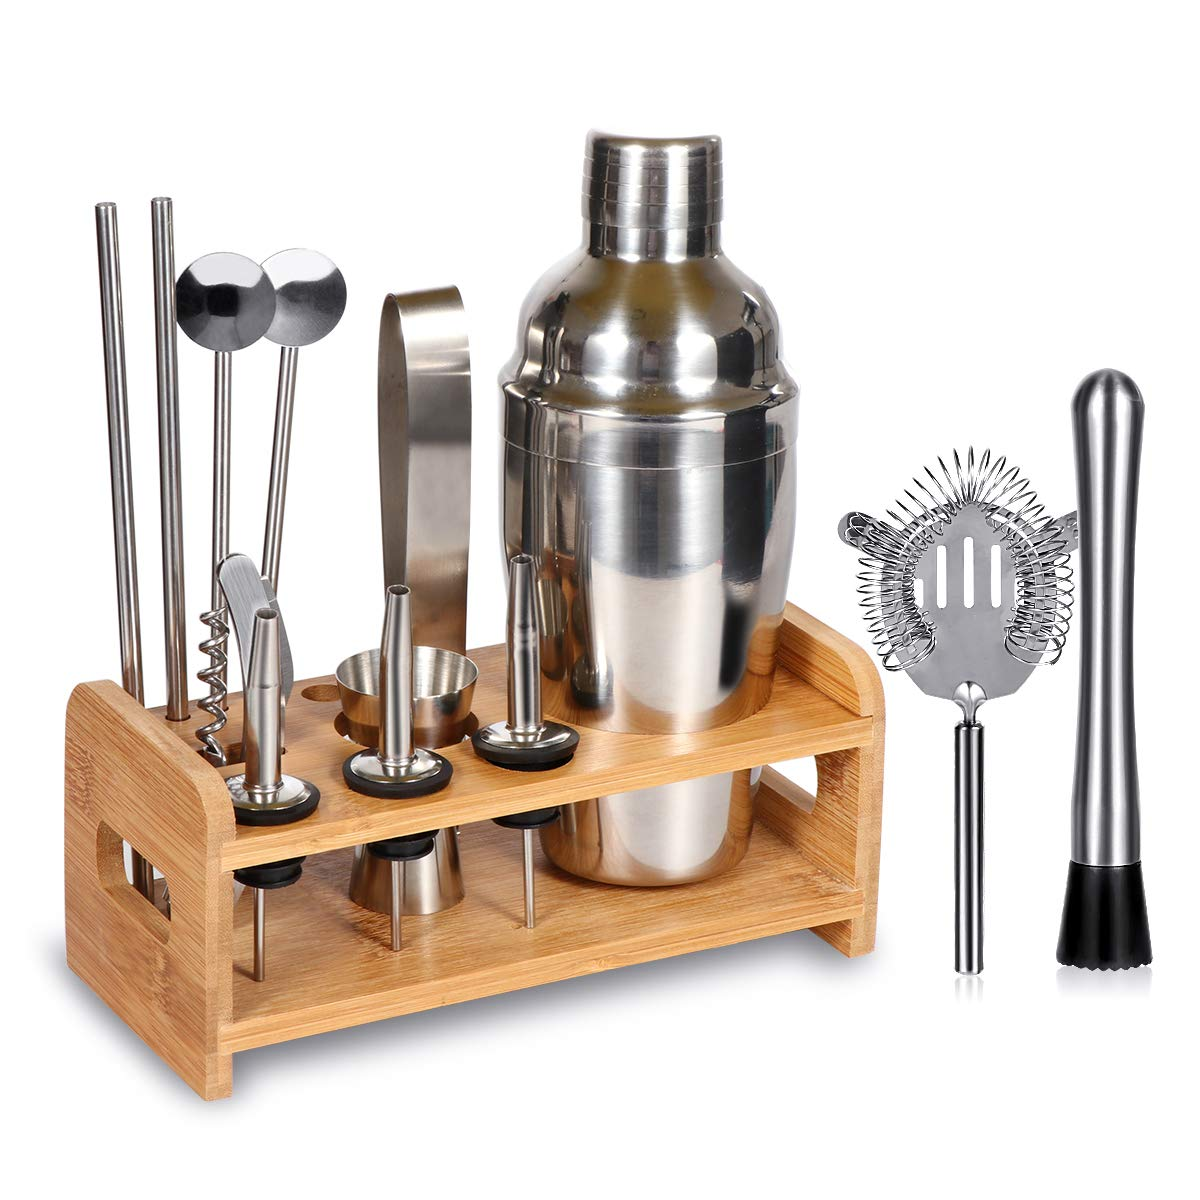 15 Piece Bartender Kit Cocktail Shaker Set with Stand: Home Bar Tools Set - Shaker with Strainer, Muddler, Jigger, Stand, Ice Thong and More - with Cocktail Recipes - Cocktail Shaker Stainless Steel by SUPERSUN (Image #1)